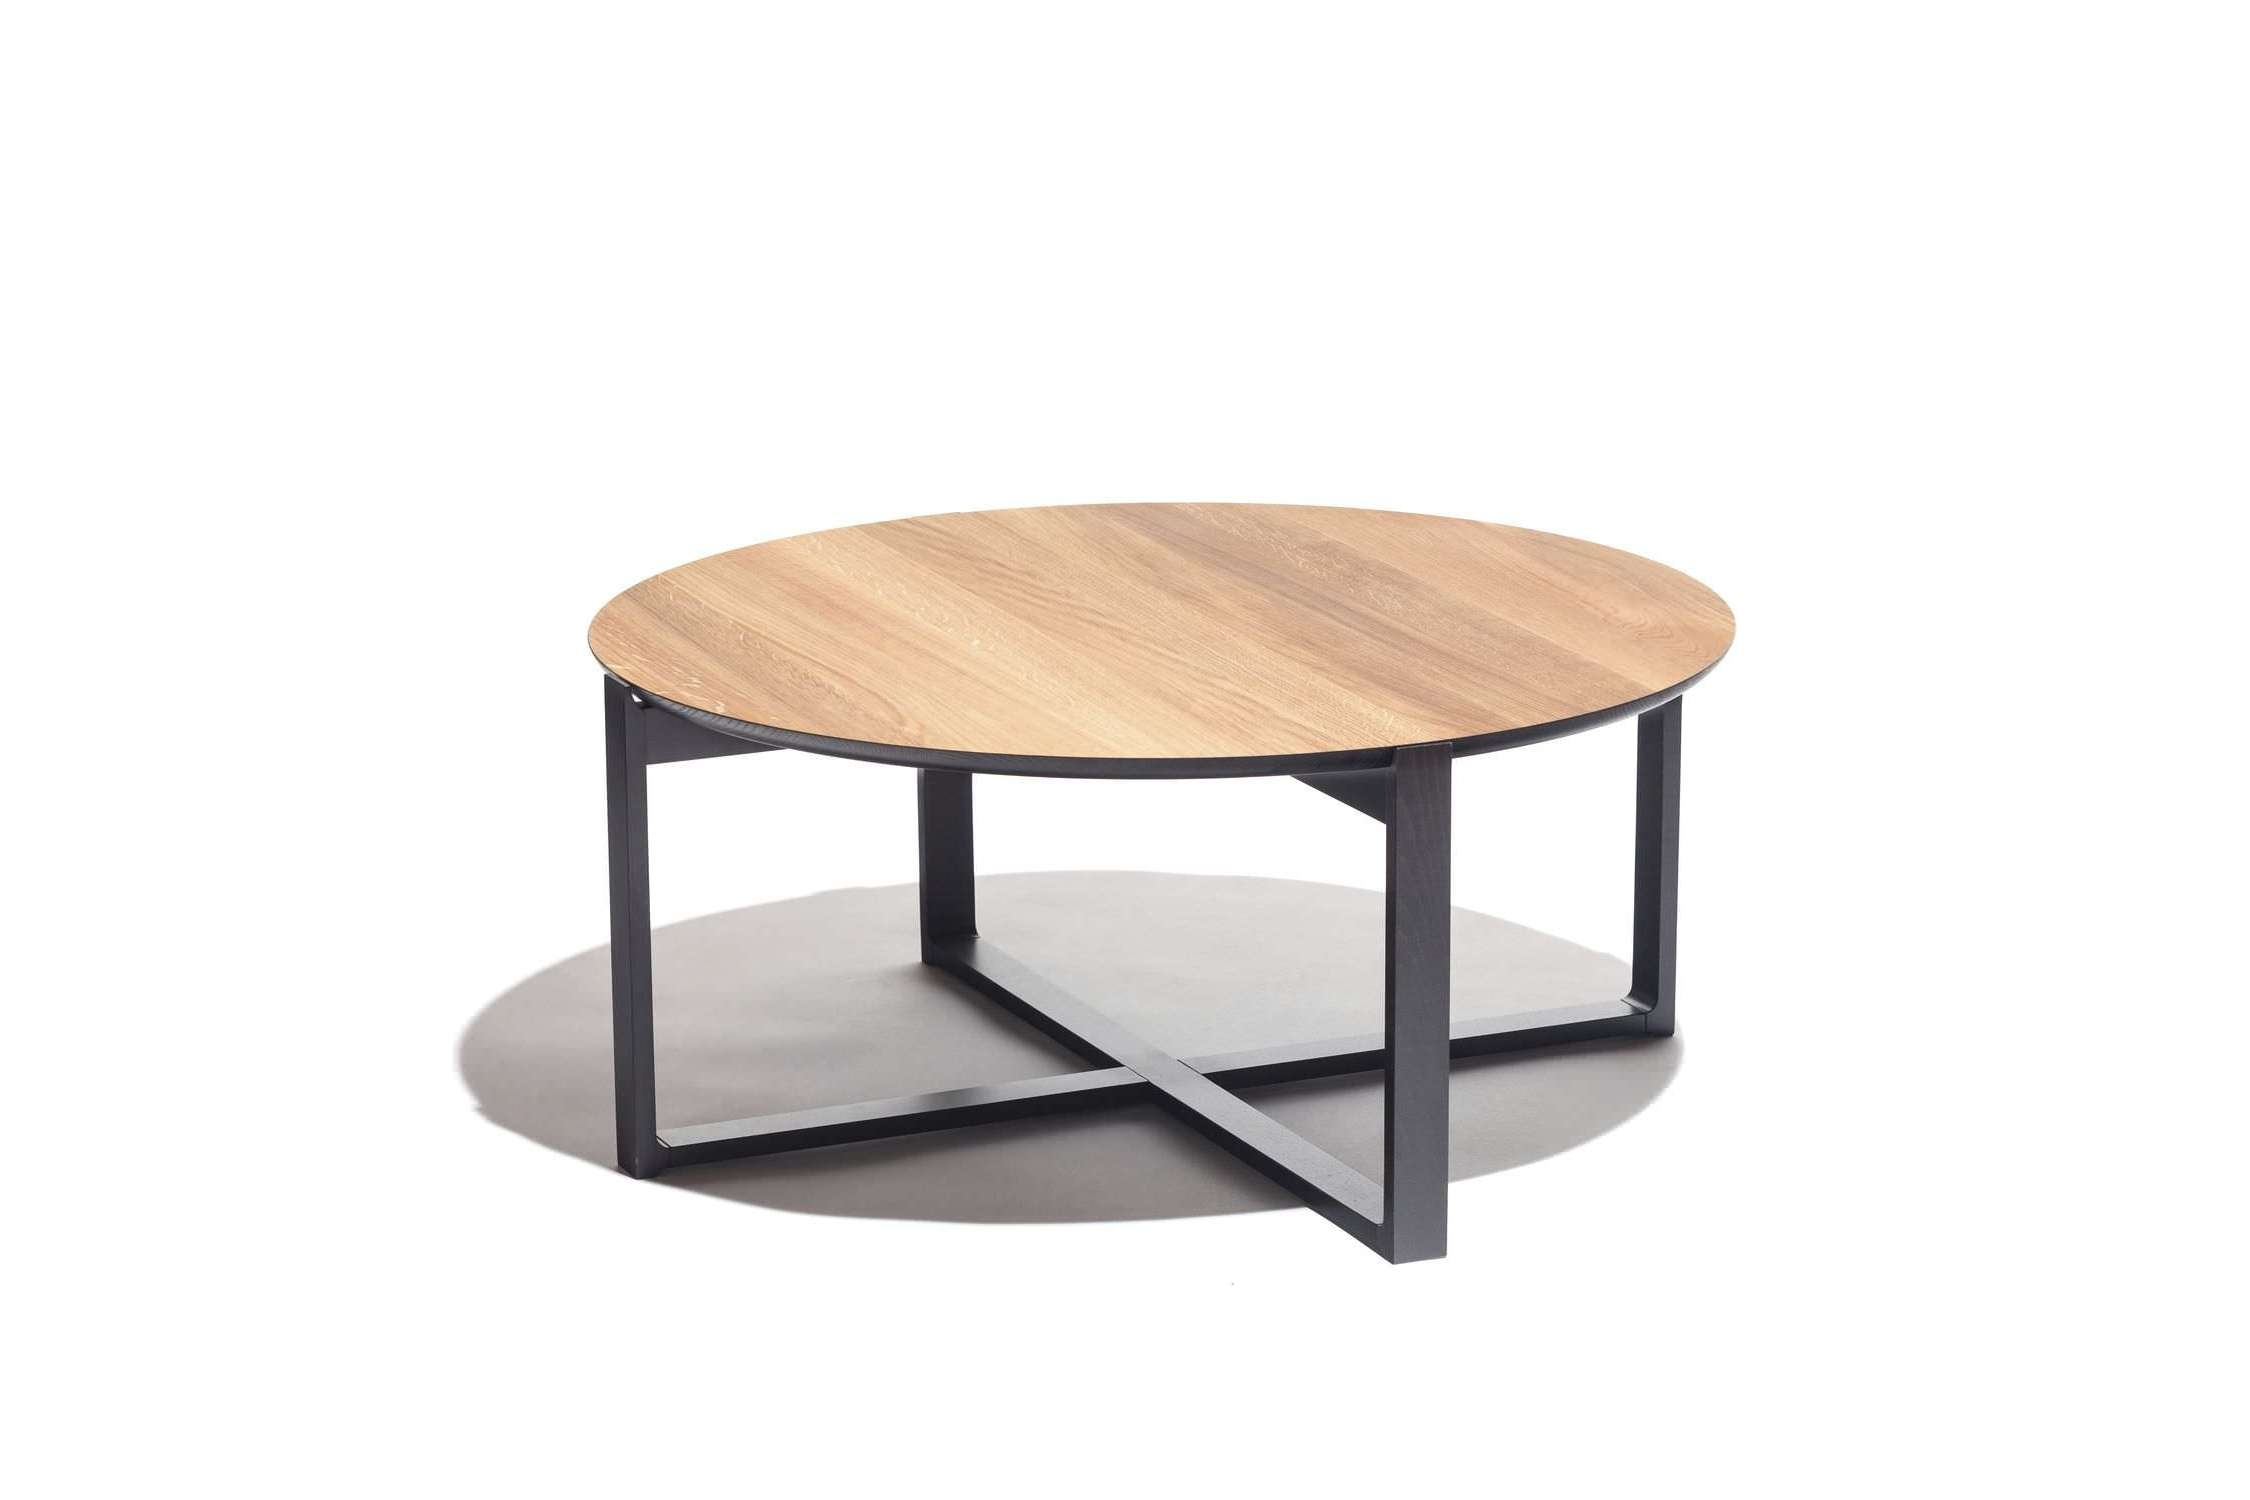 Fashionable Round Beech Coffee Tables Throughout Contemporary Coffee Table / Oak / Beech / Round – Delta 723Kai (View 14 of 20)